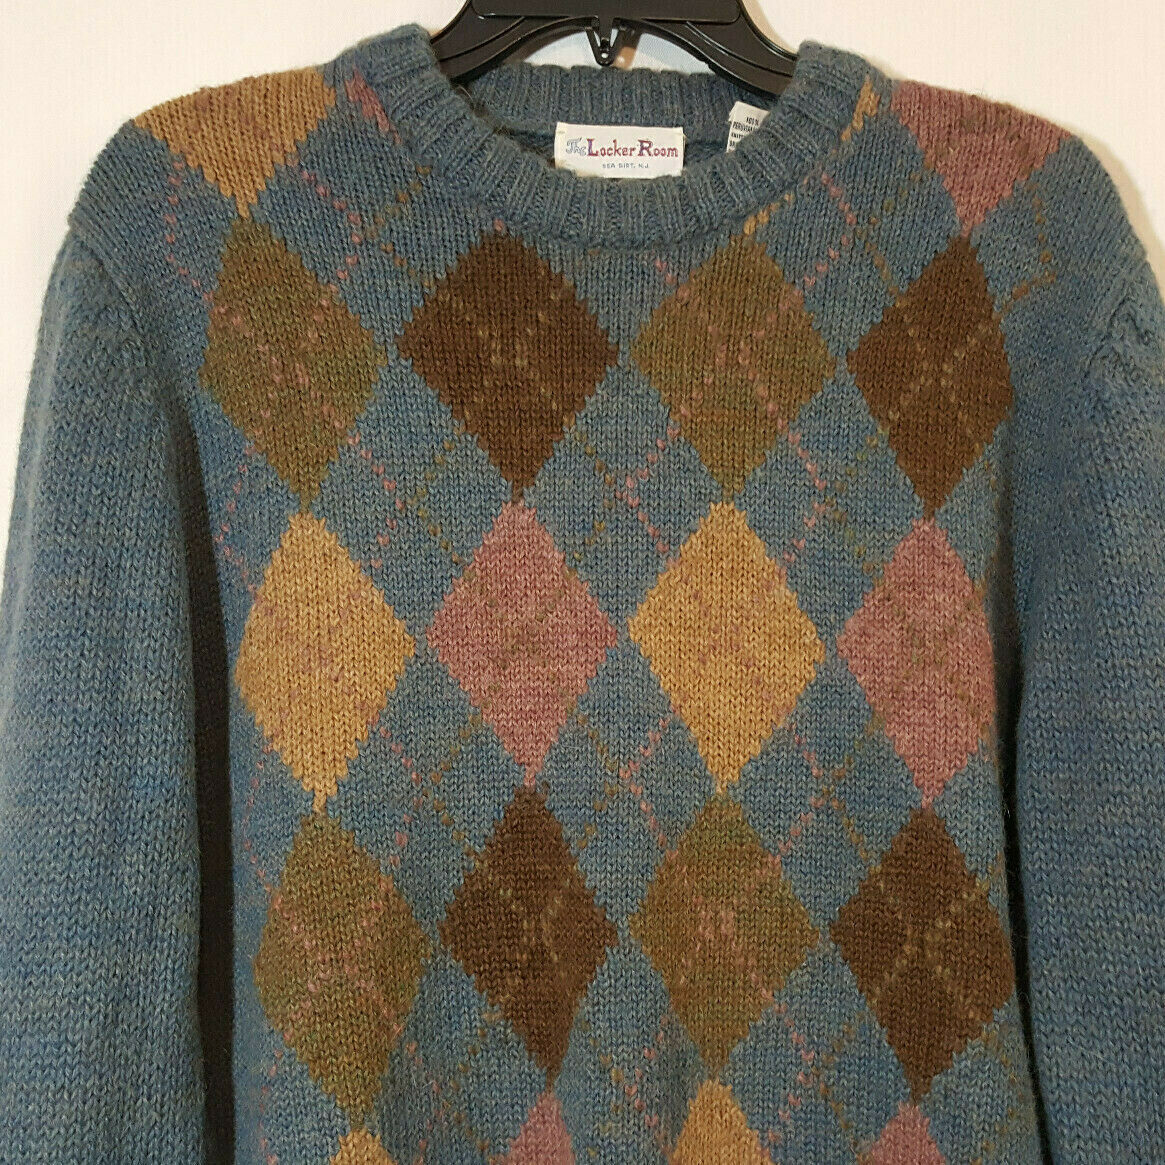 Vintage Alpaca Sweater bluee Brown Pink Argyle Sz L